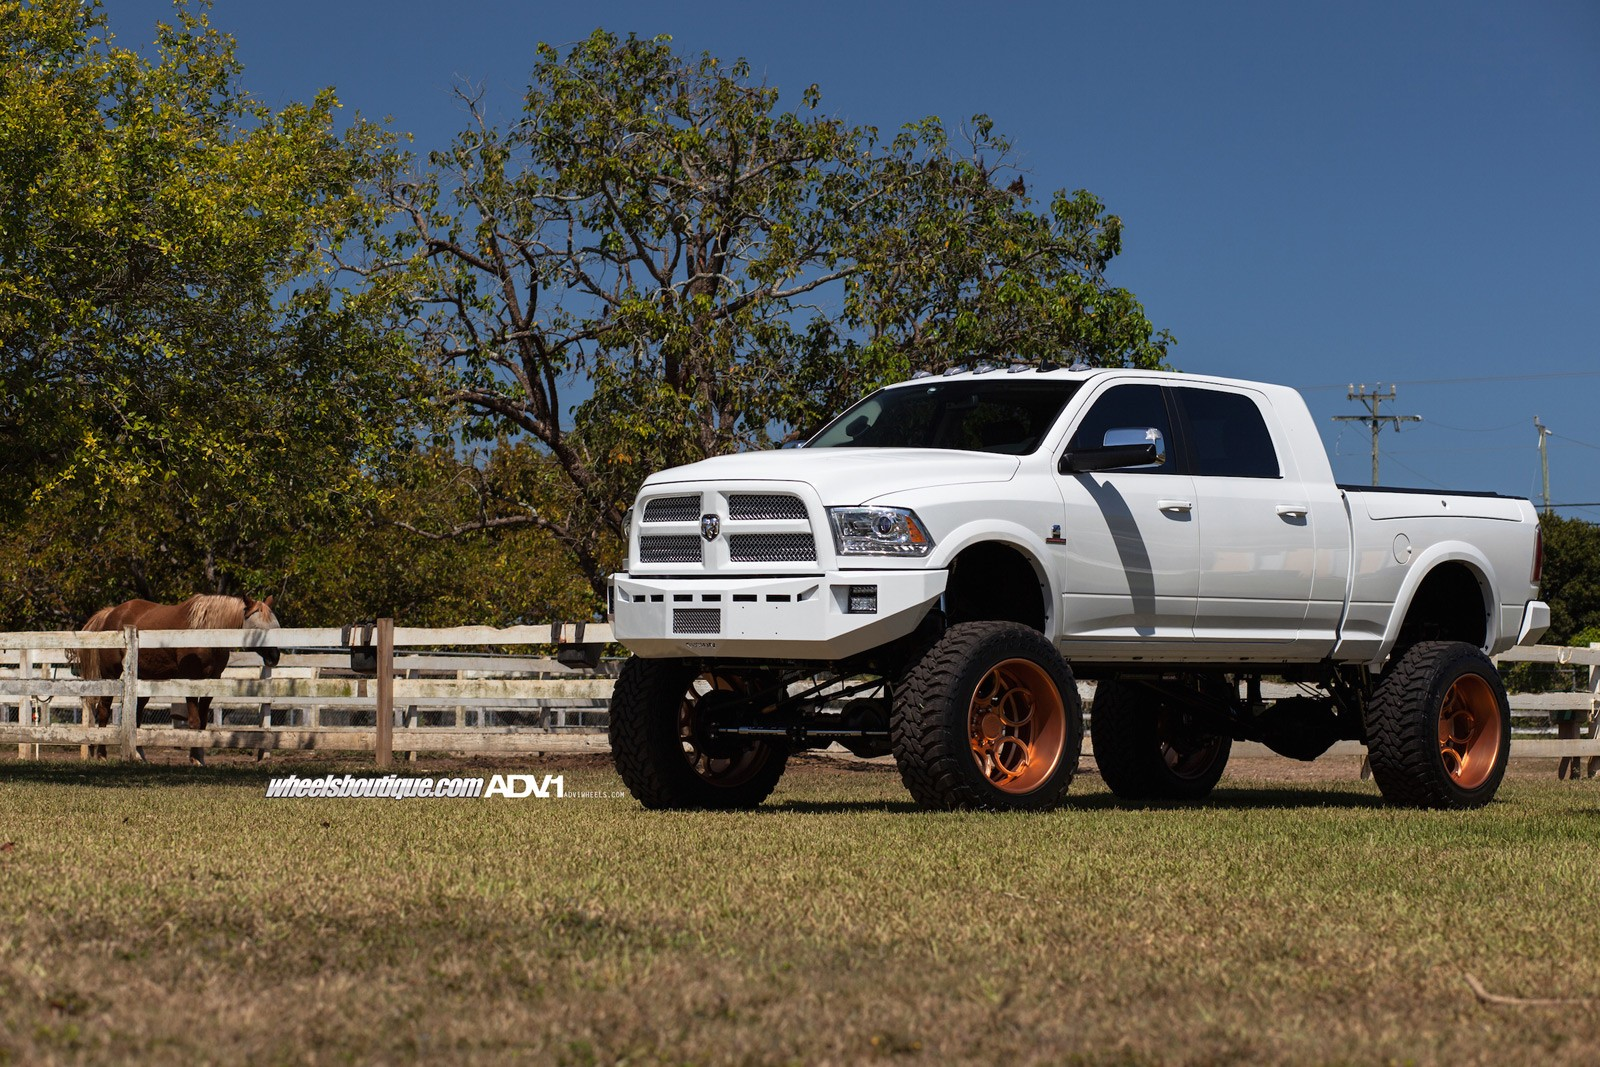 Lifted Ram 2500 On Rose Gold Wheels Meets A Horse